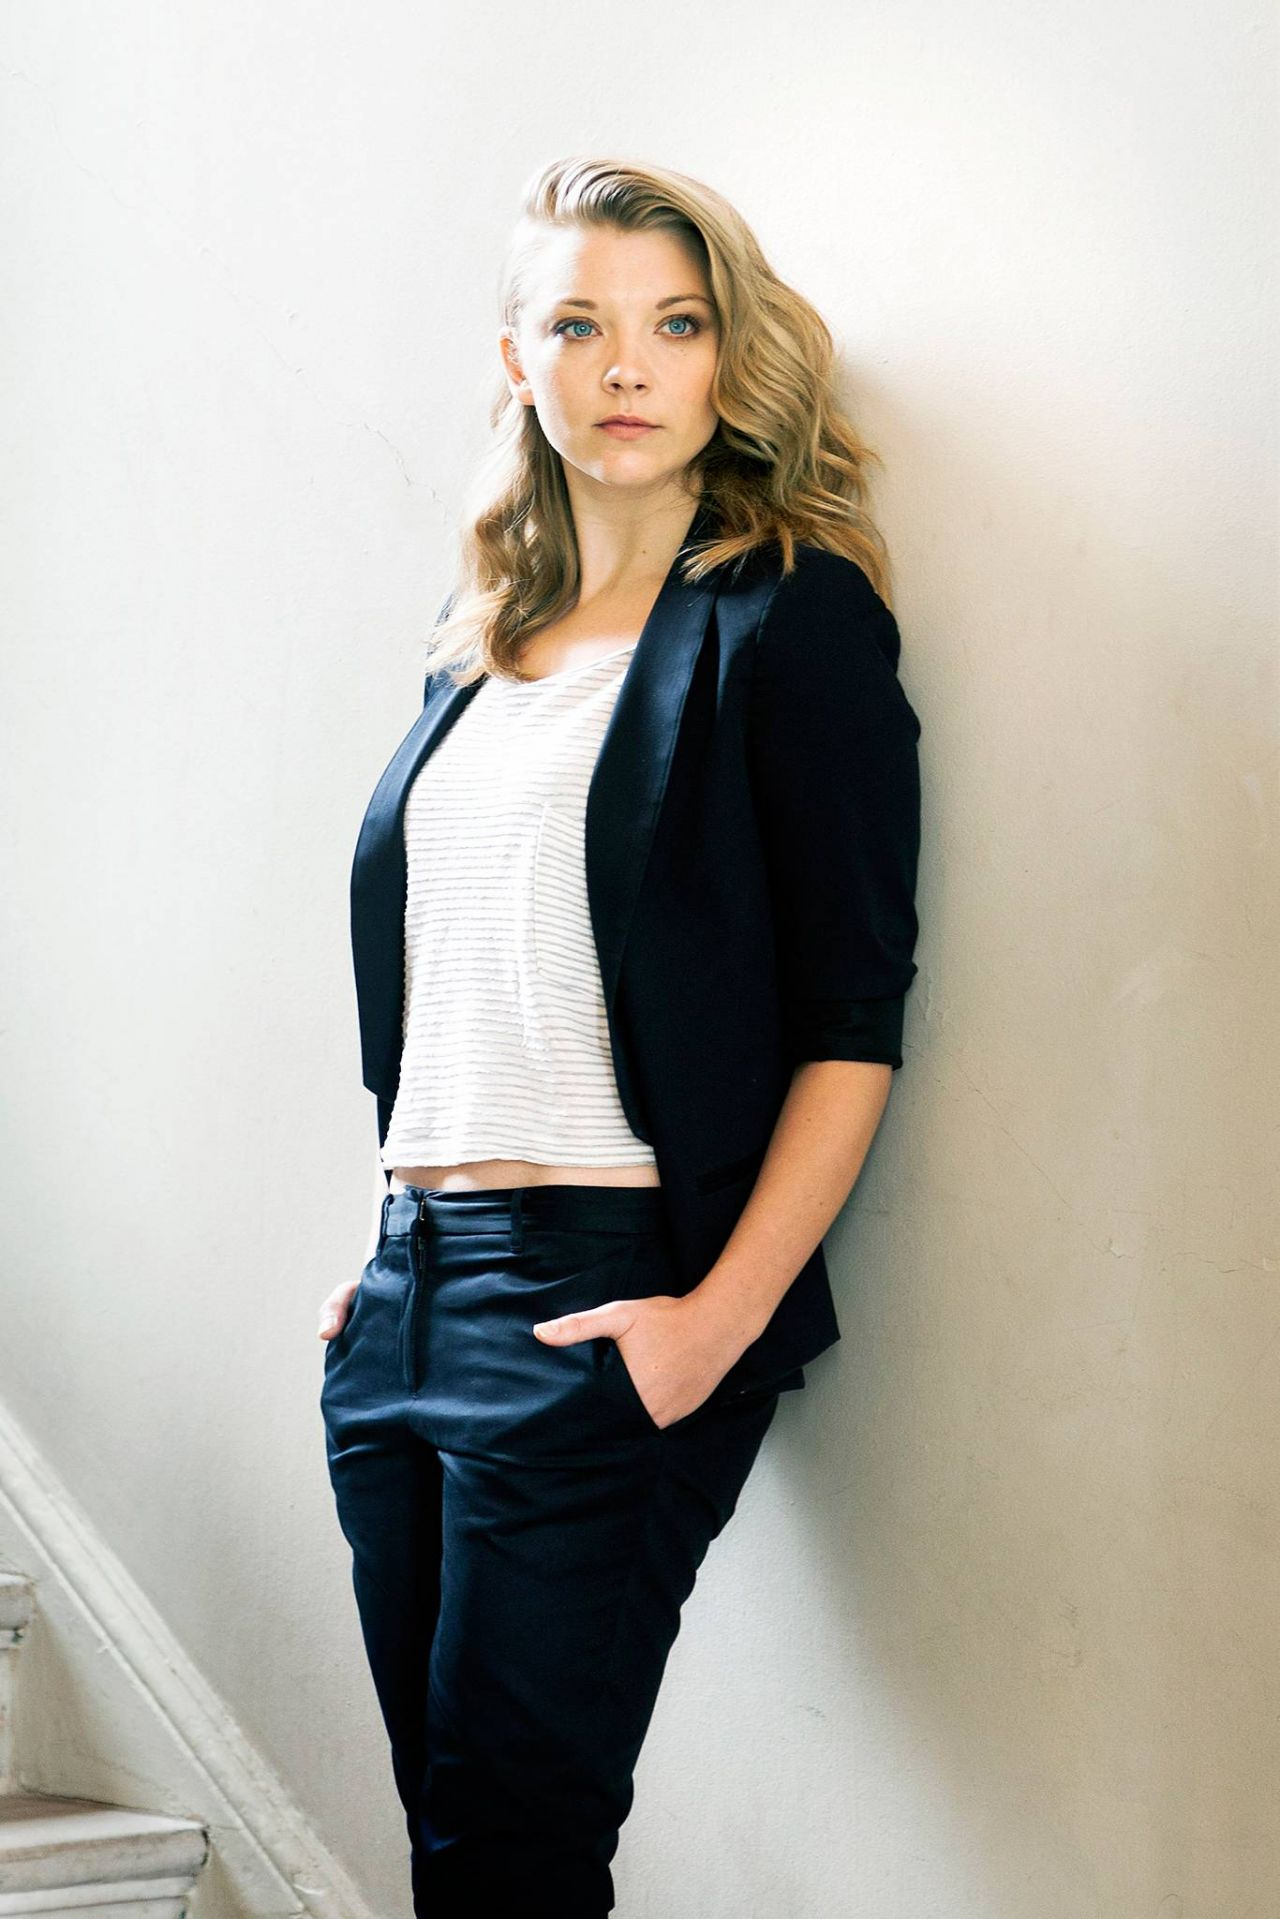 Natalie Dormer Photoshoot The Telegraph August 2015